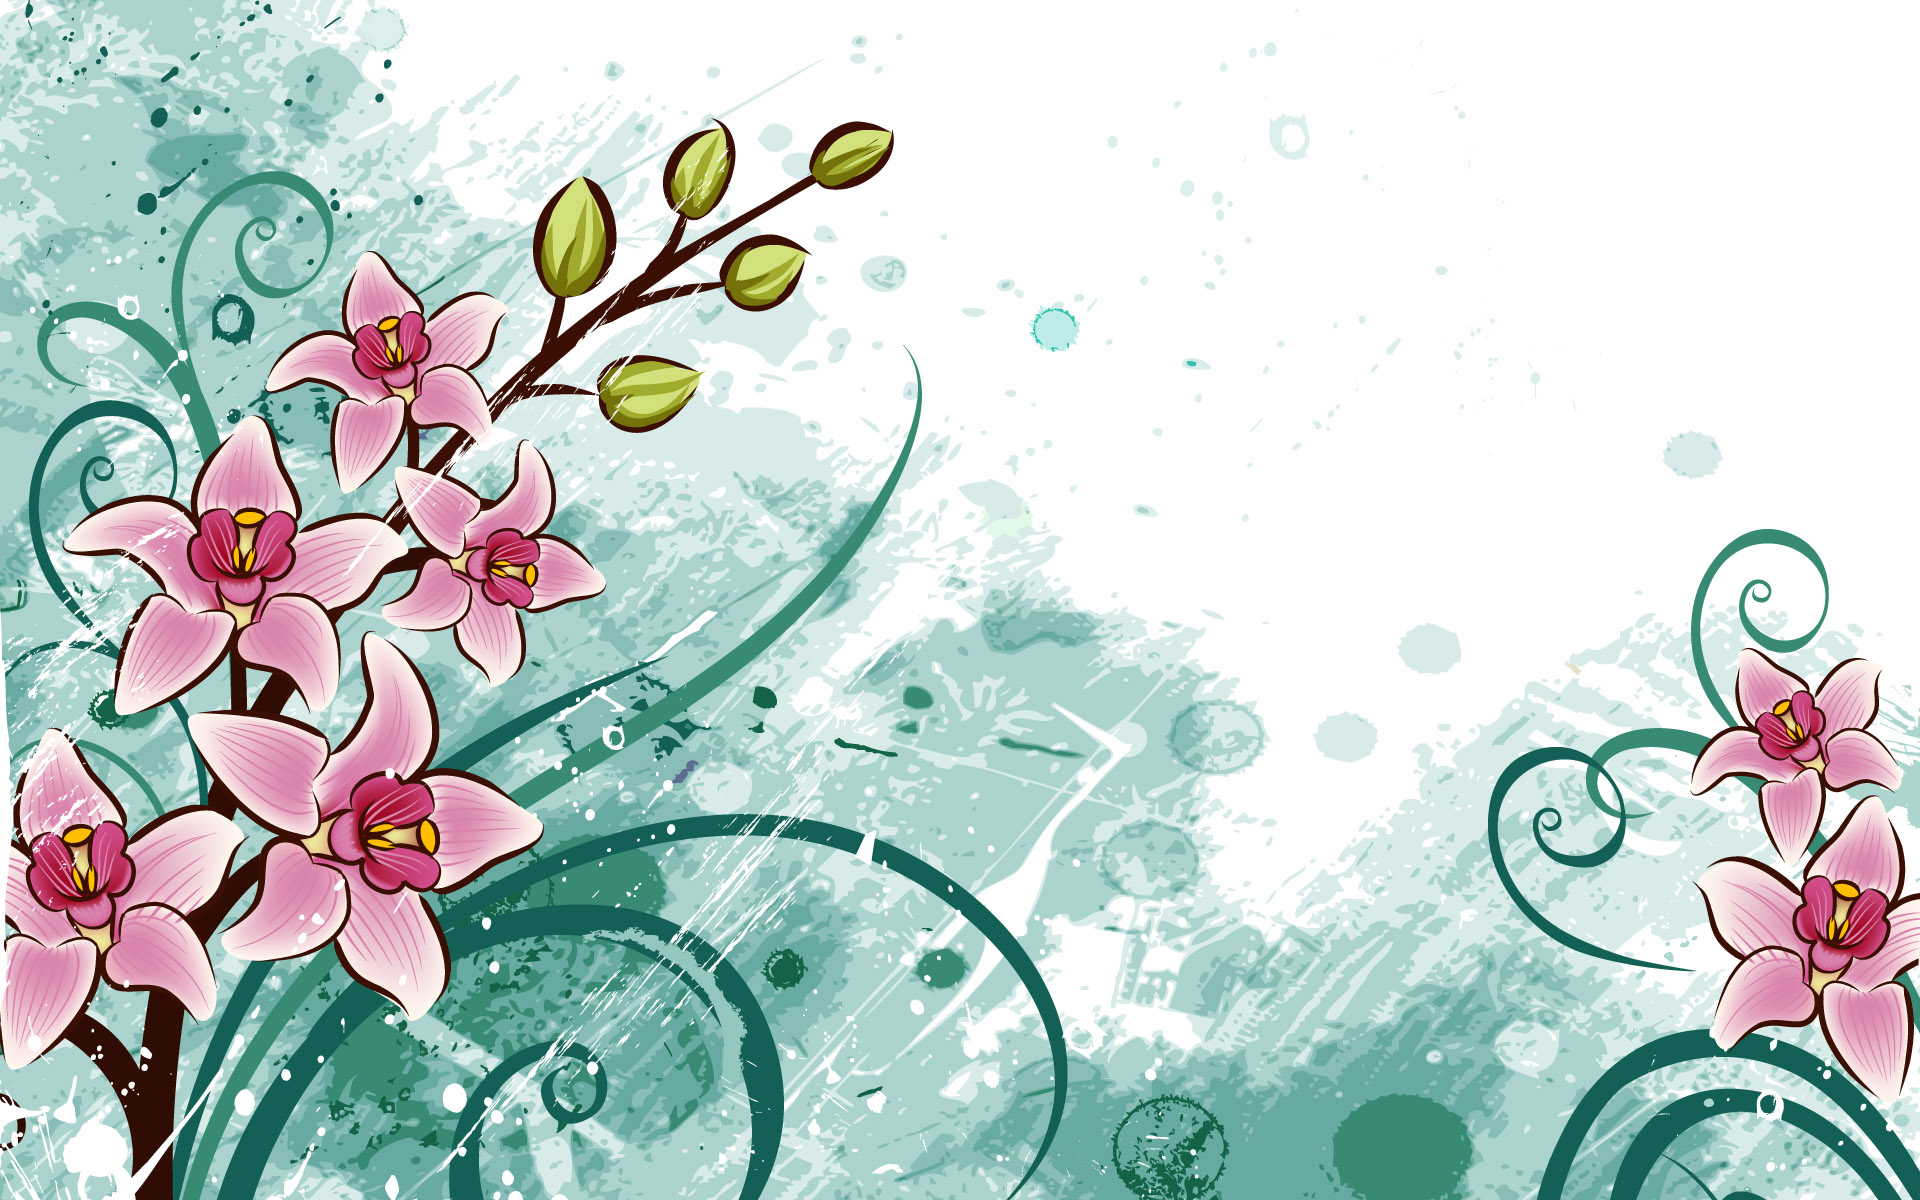 Designs Wallpapers Art Images HD Wallpapers flowers n birds 1920x1200